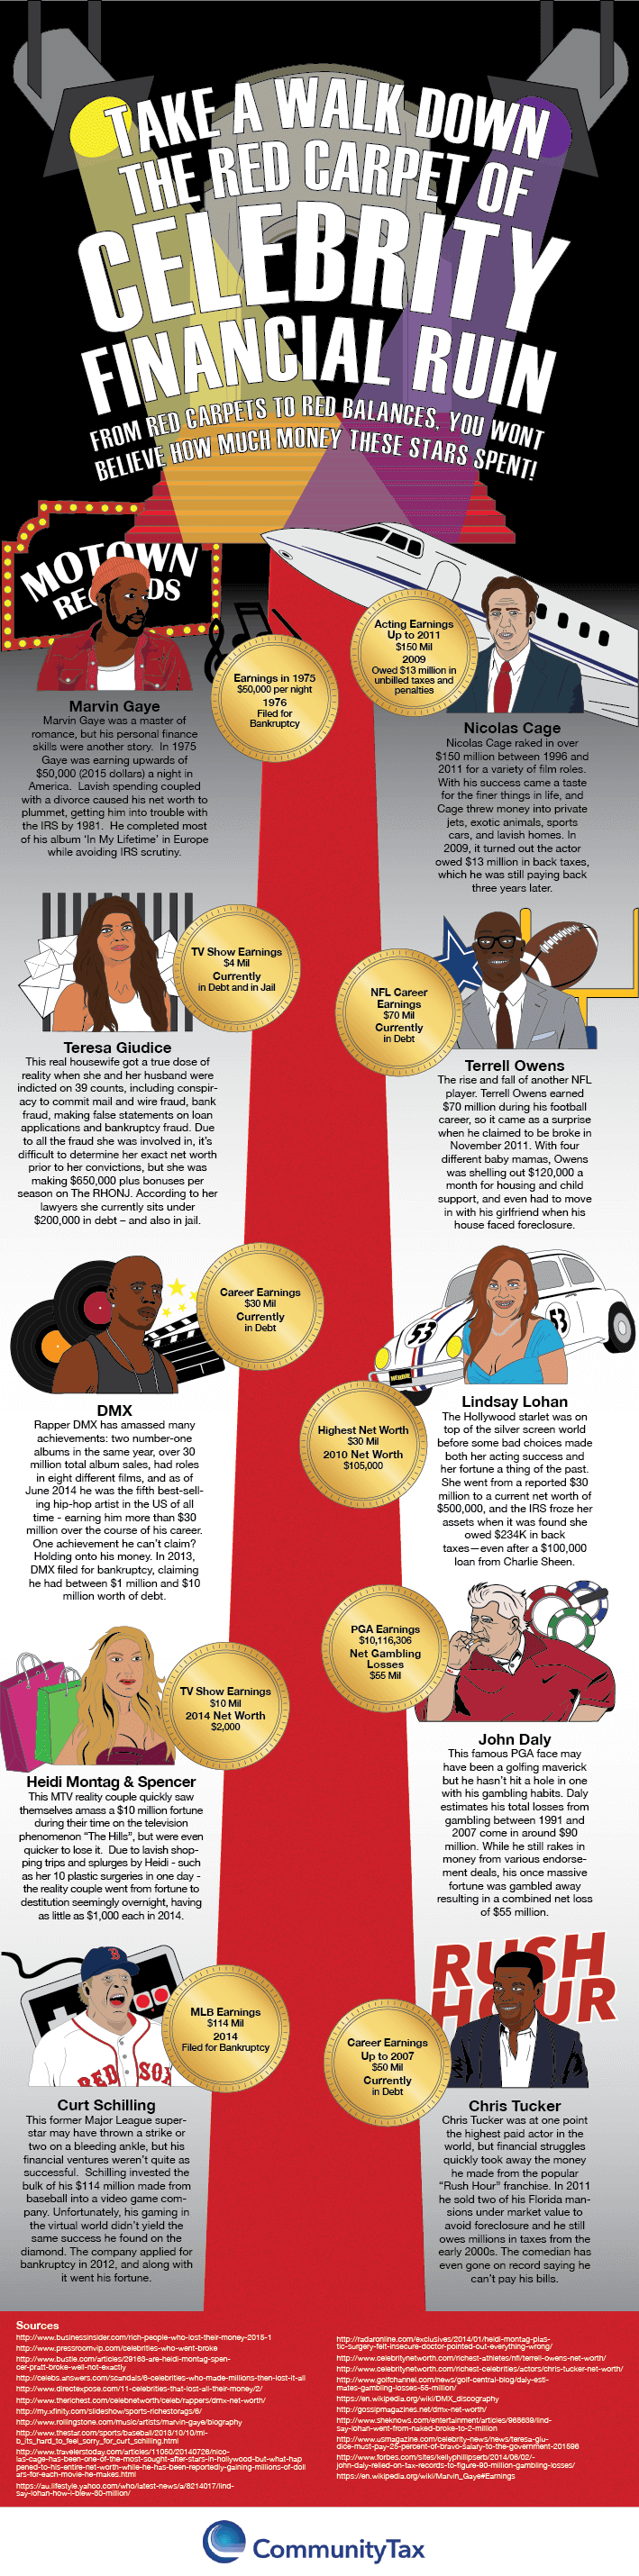 Celebrities-Who Squandered-Their-Financial-Fortunes-infographic